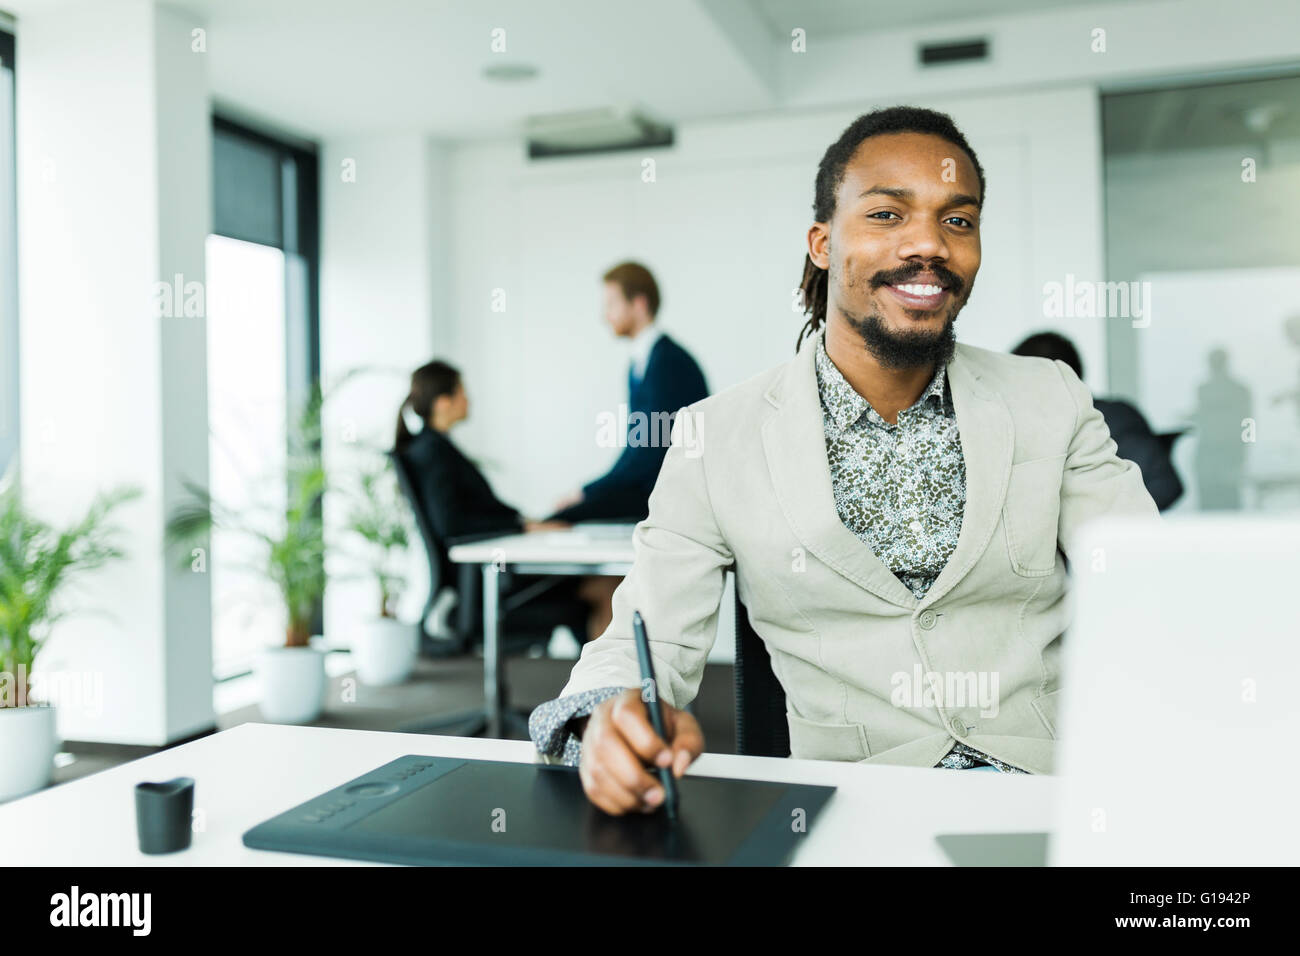 Black handsome graphics designer  with dreadlocks using digitizer in a well lit, tidy office environment  while - Stock Image